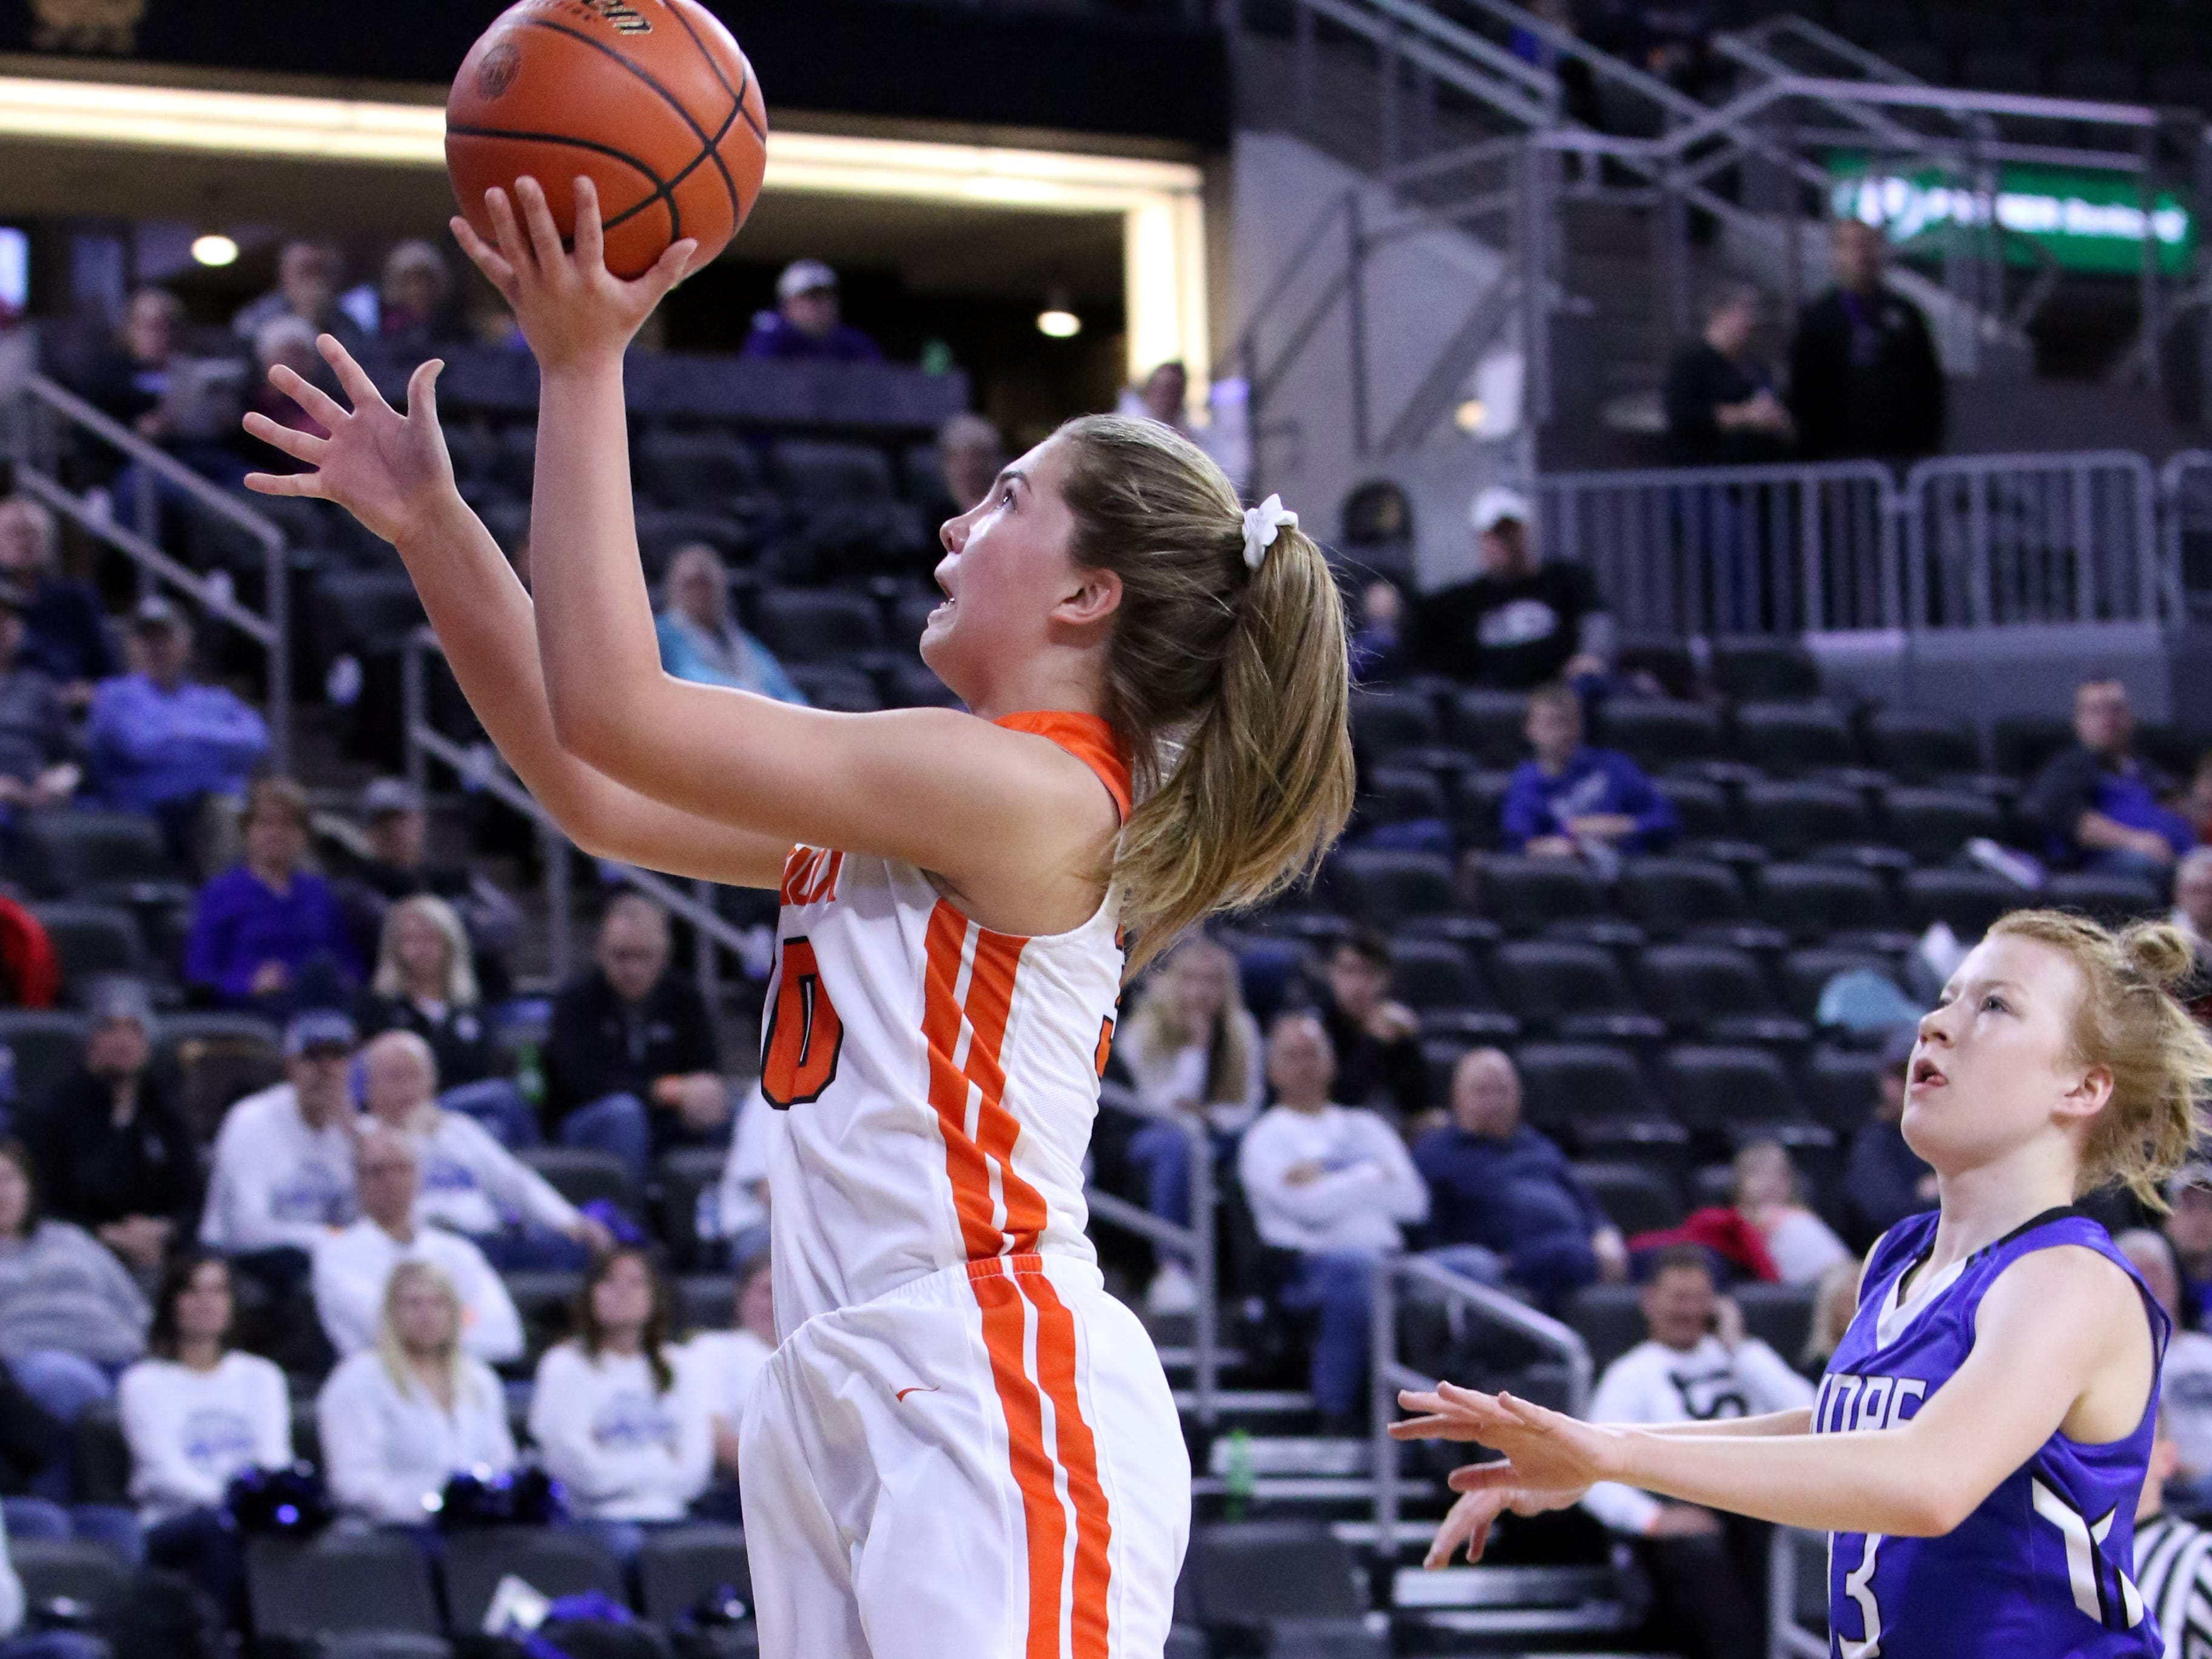 Rianna Fillipi of Lennox goes in for a layup ahead of Haleigh Timmer of St Thomas More during Thursday's game at the Premier Center in Sioux Falls.